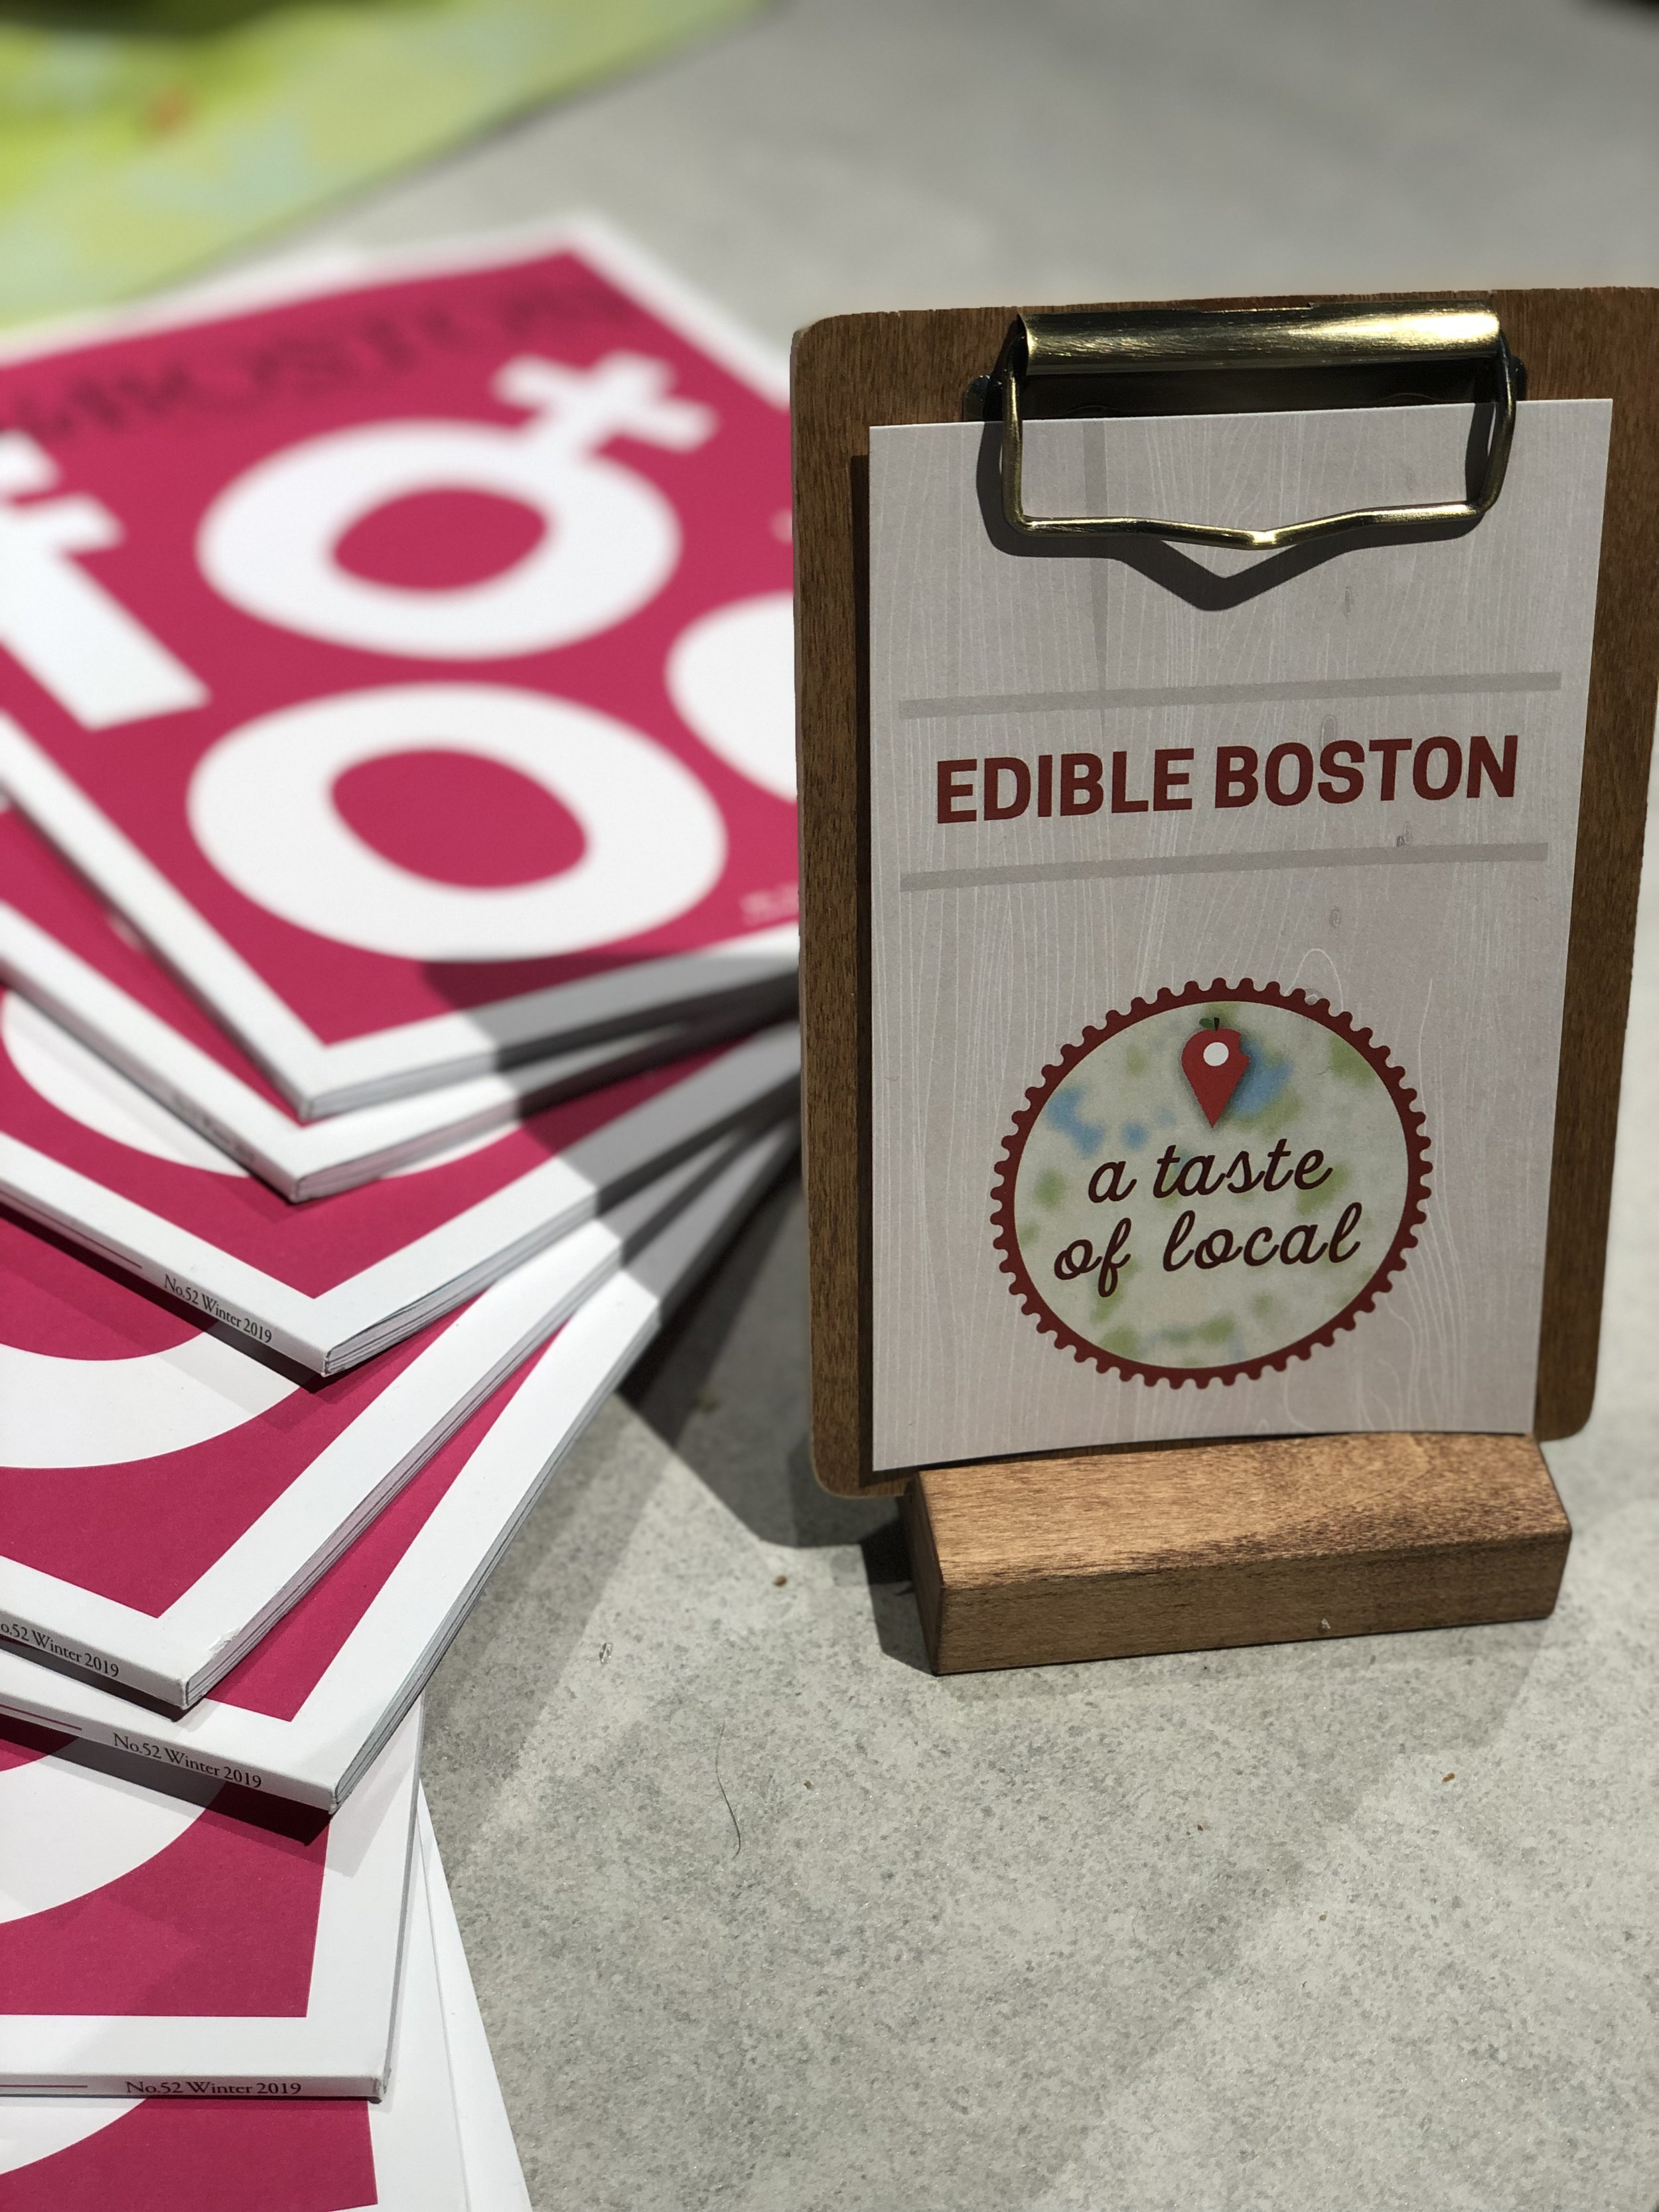 Edible Boston